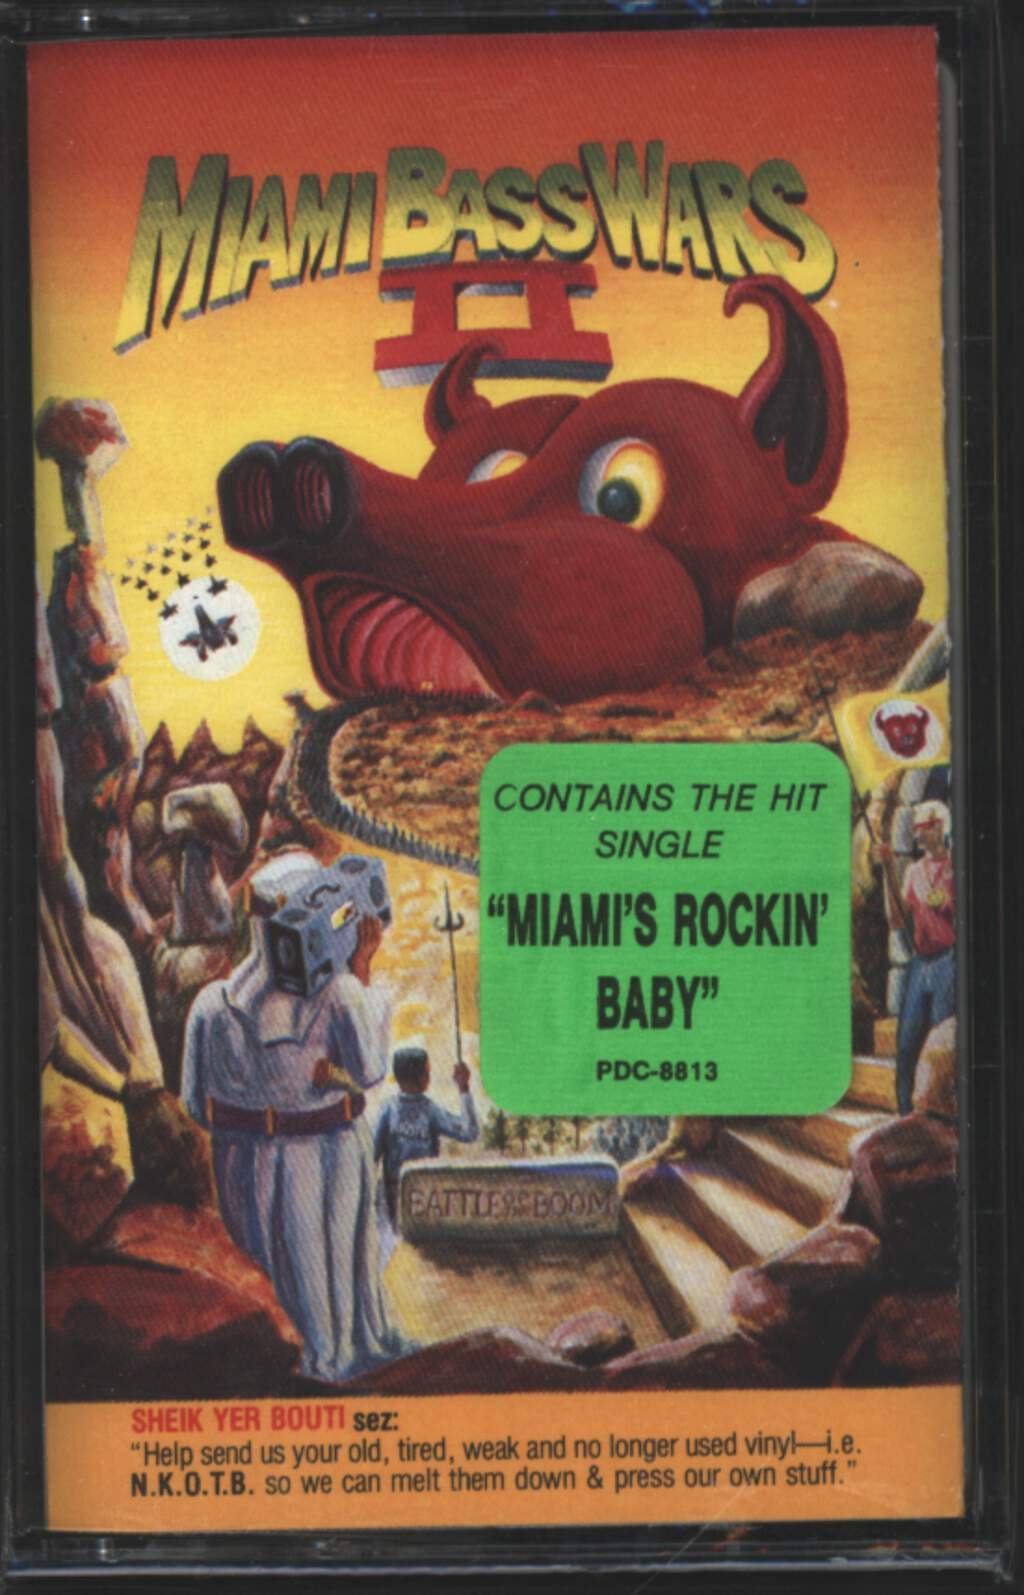 Various: Miami Bass Wars II - Battle Of The Boom, Tape